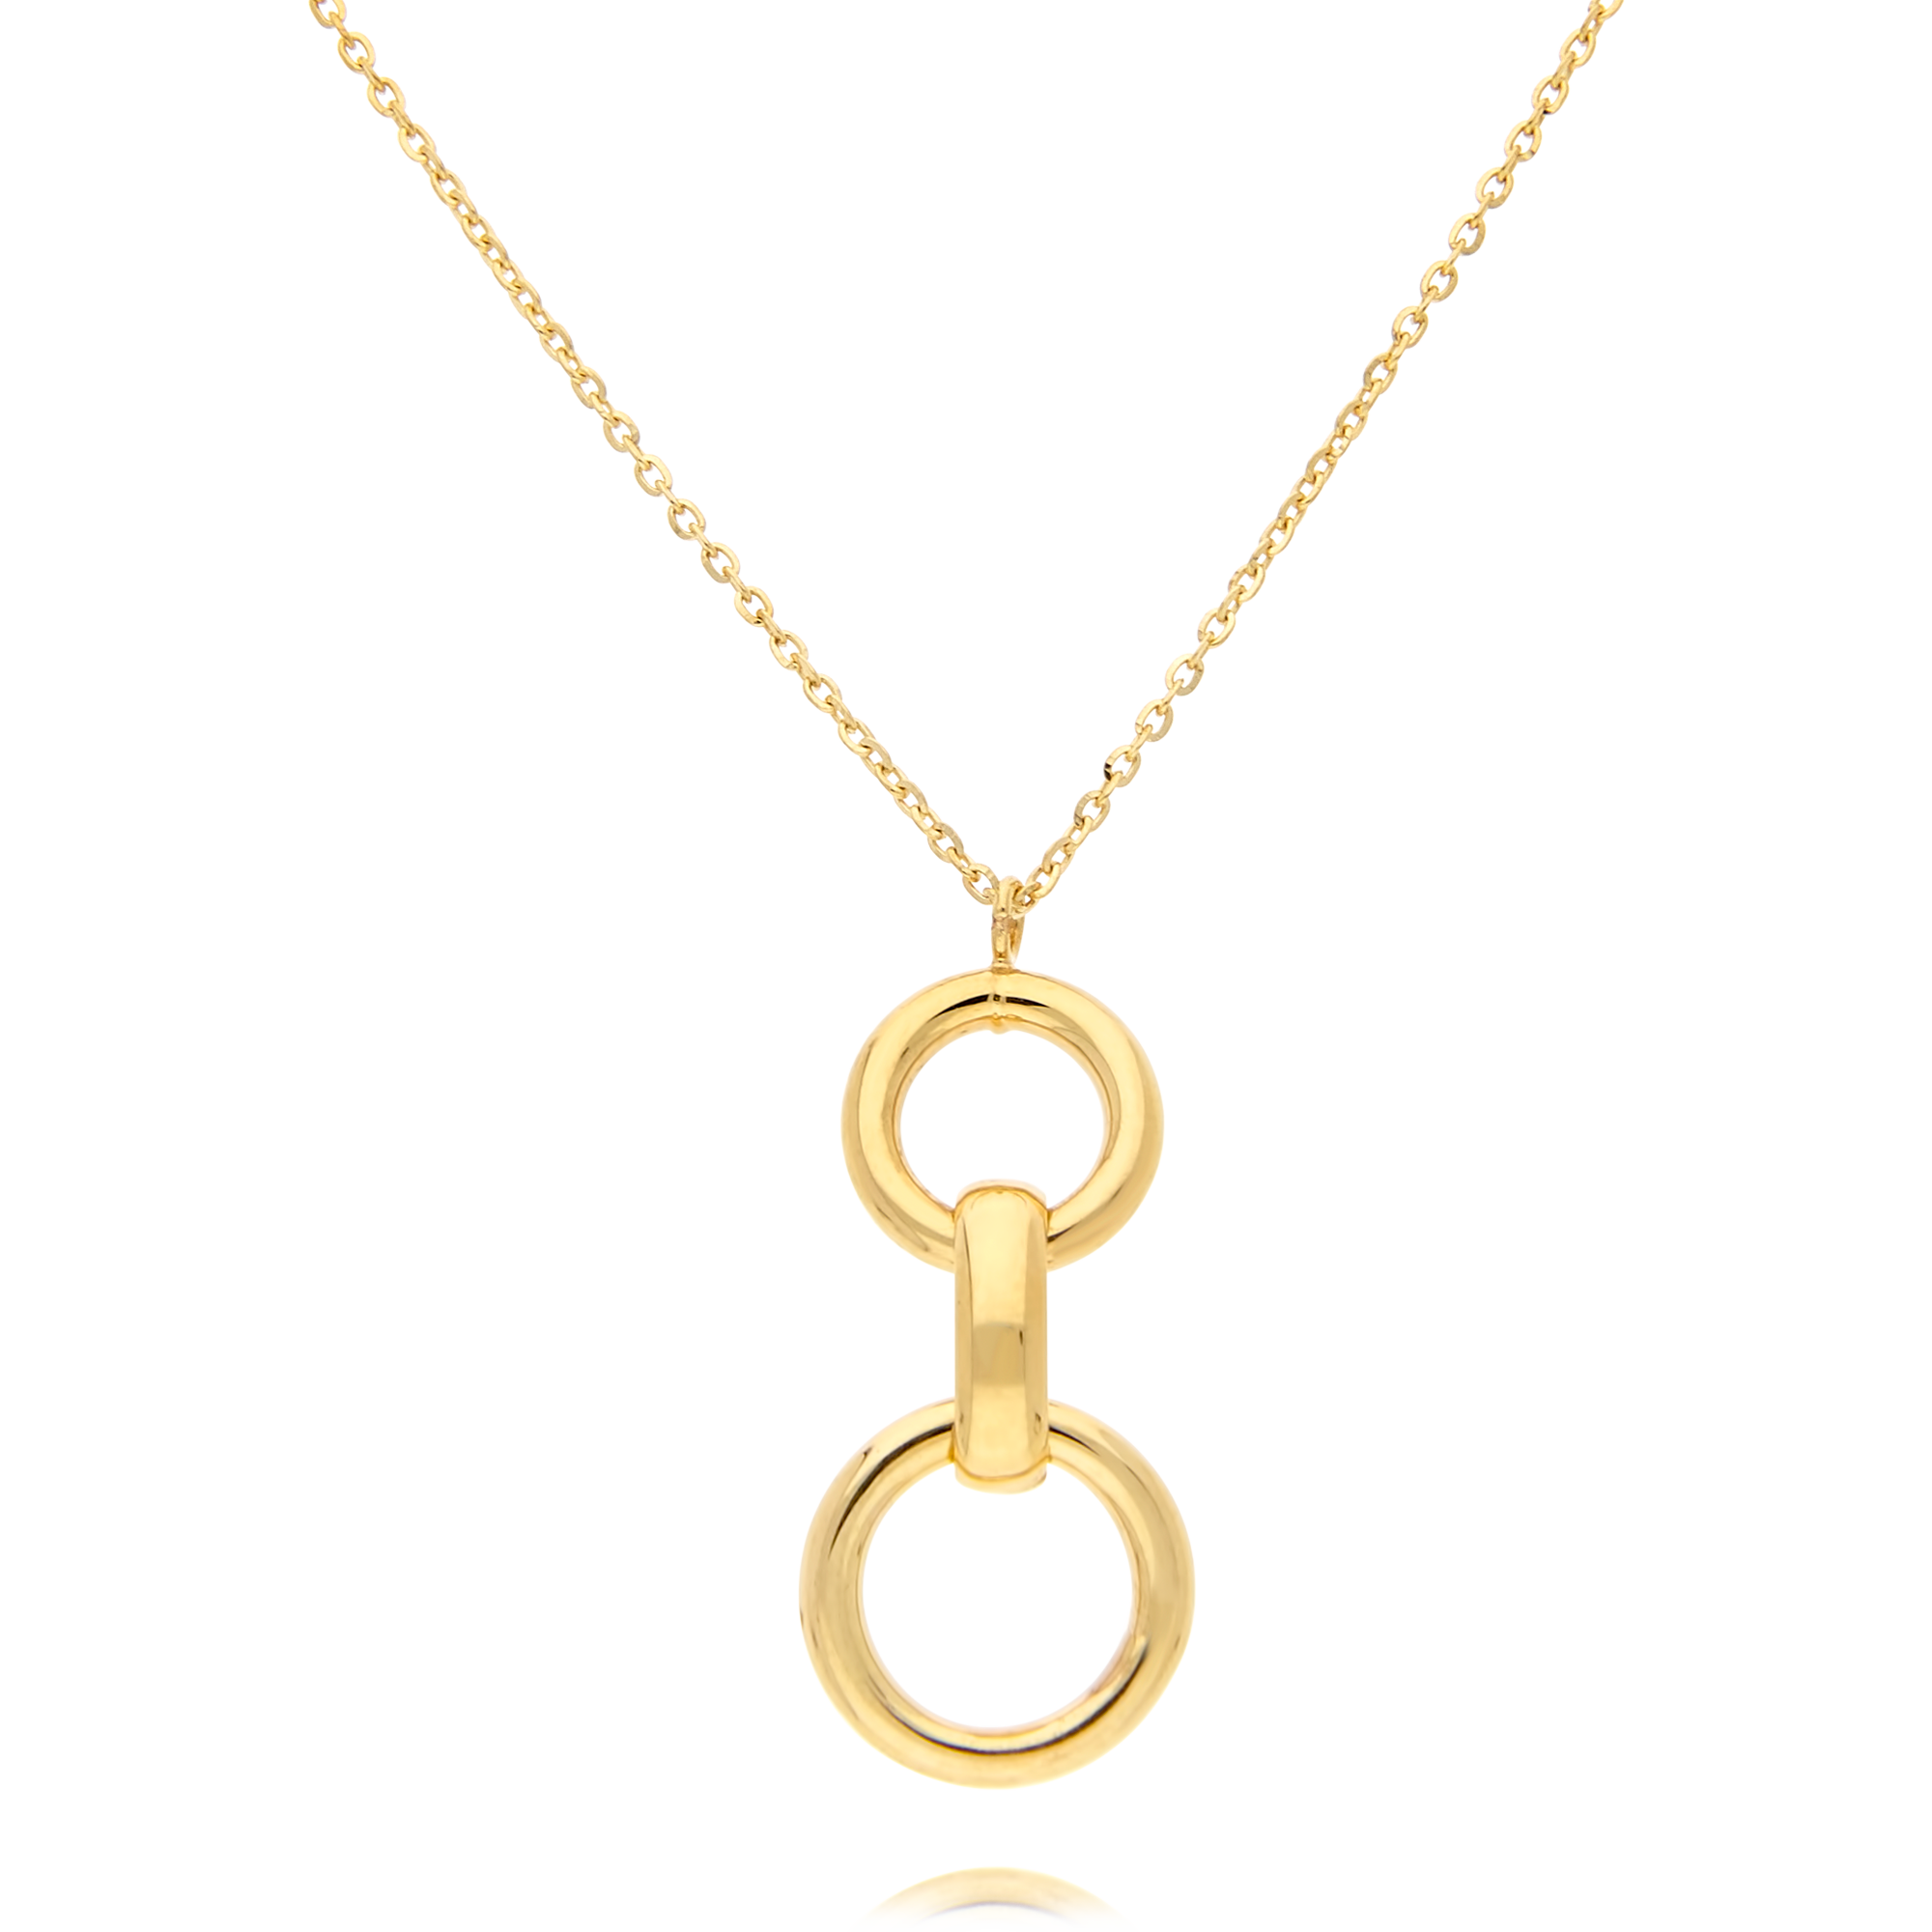 9ct Gold Three Ring Link Pendant